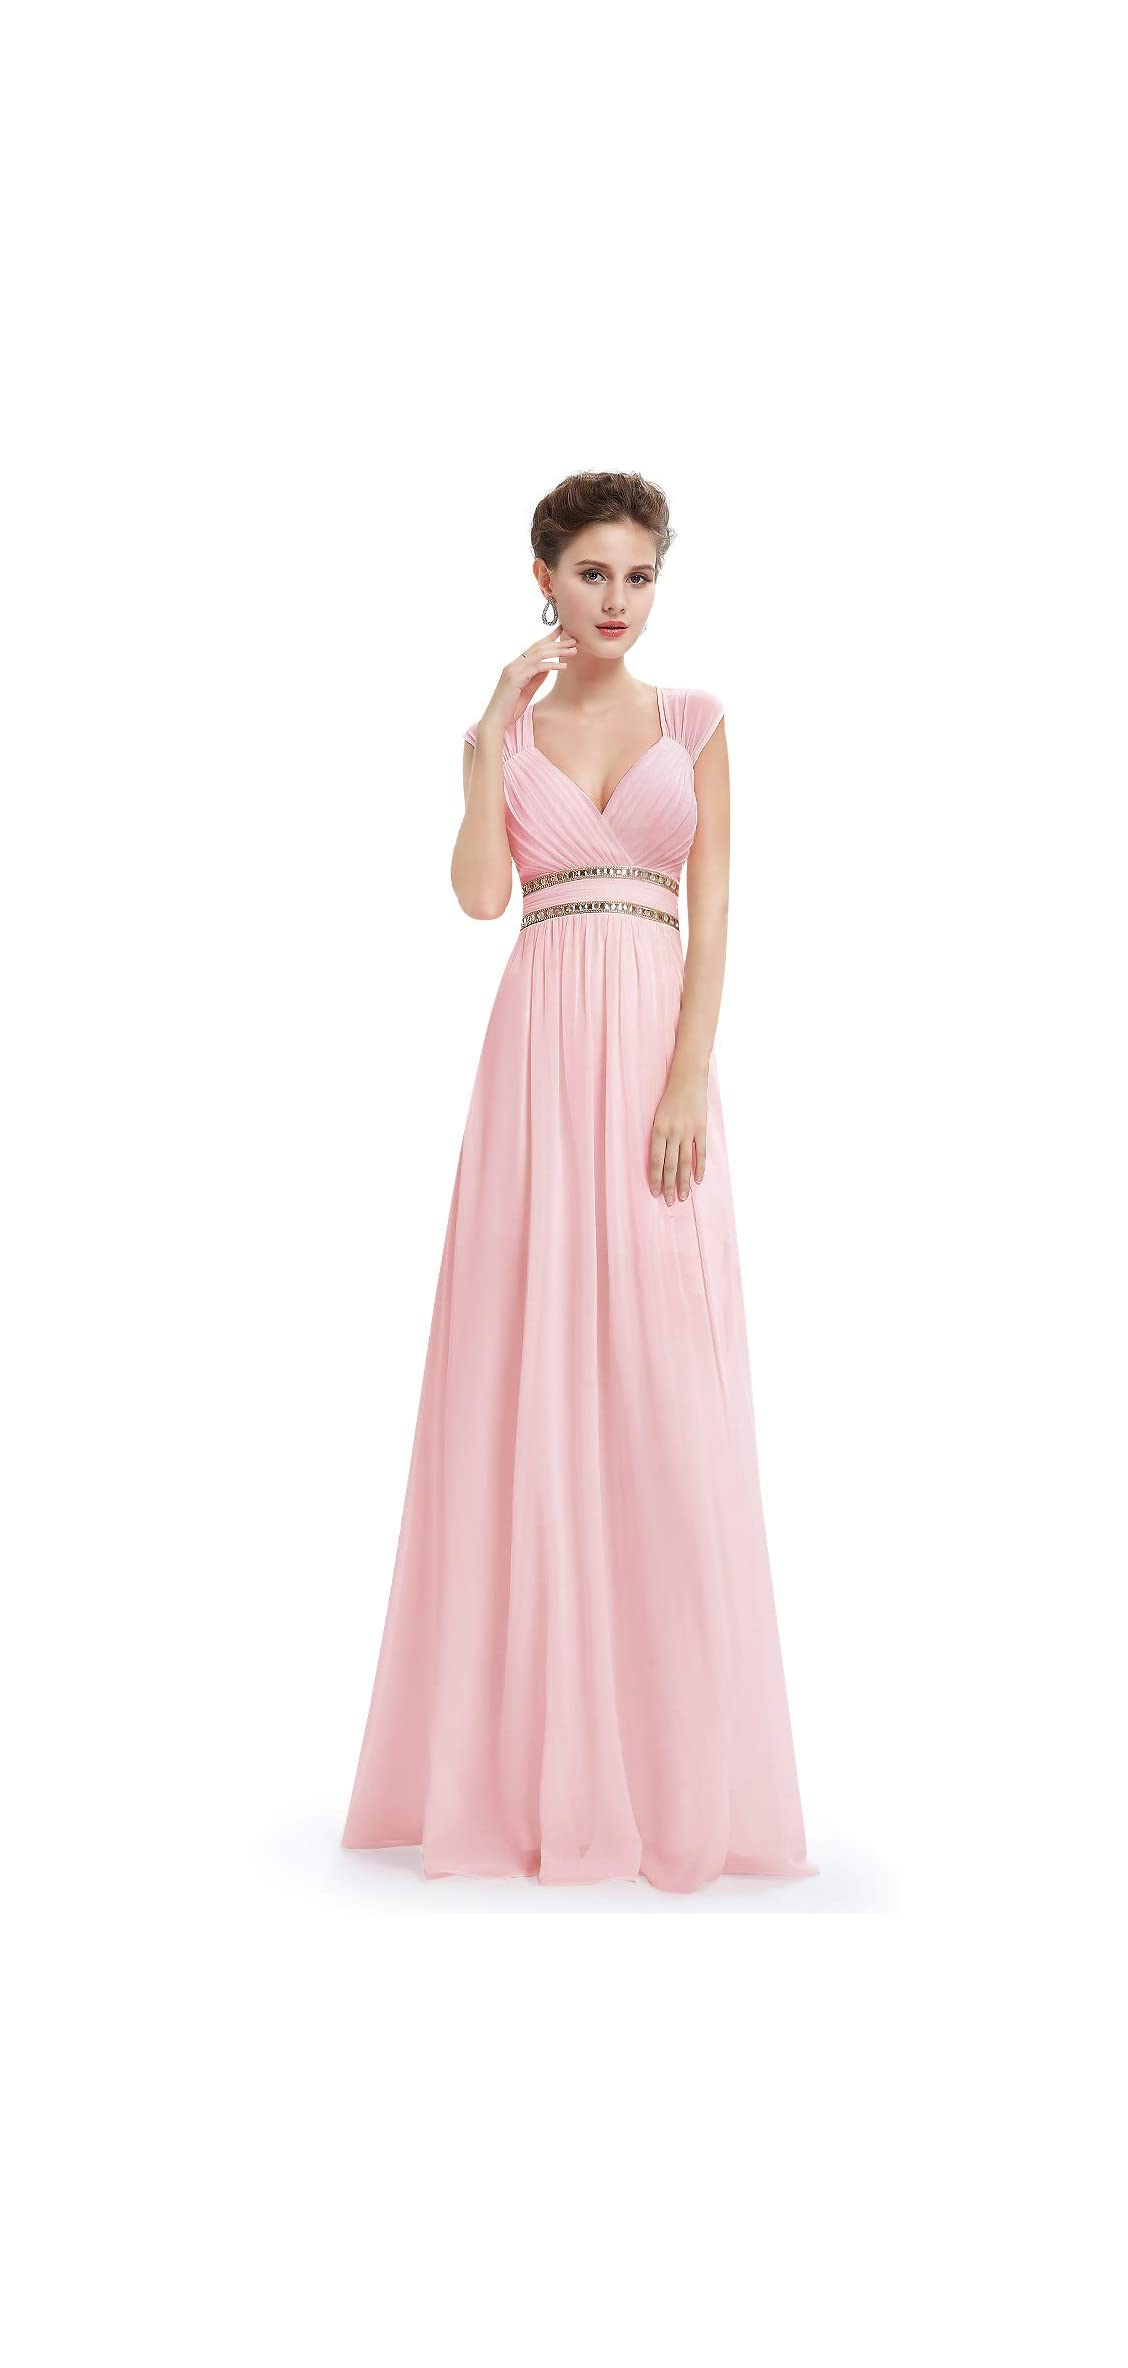 Women's Elegant V-neck Sleeveless Formal Long Dress